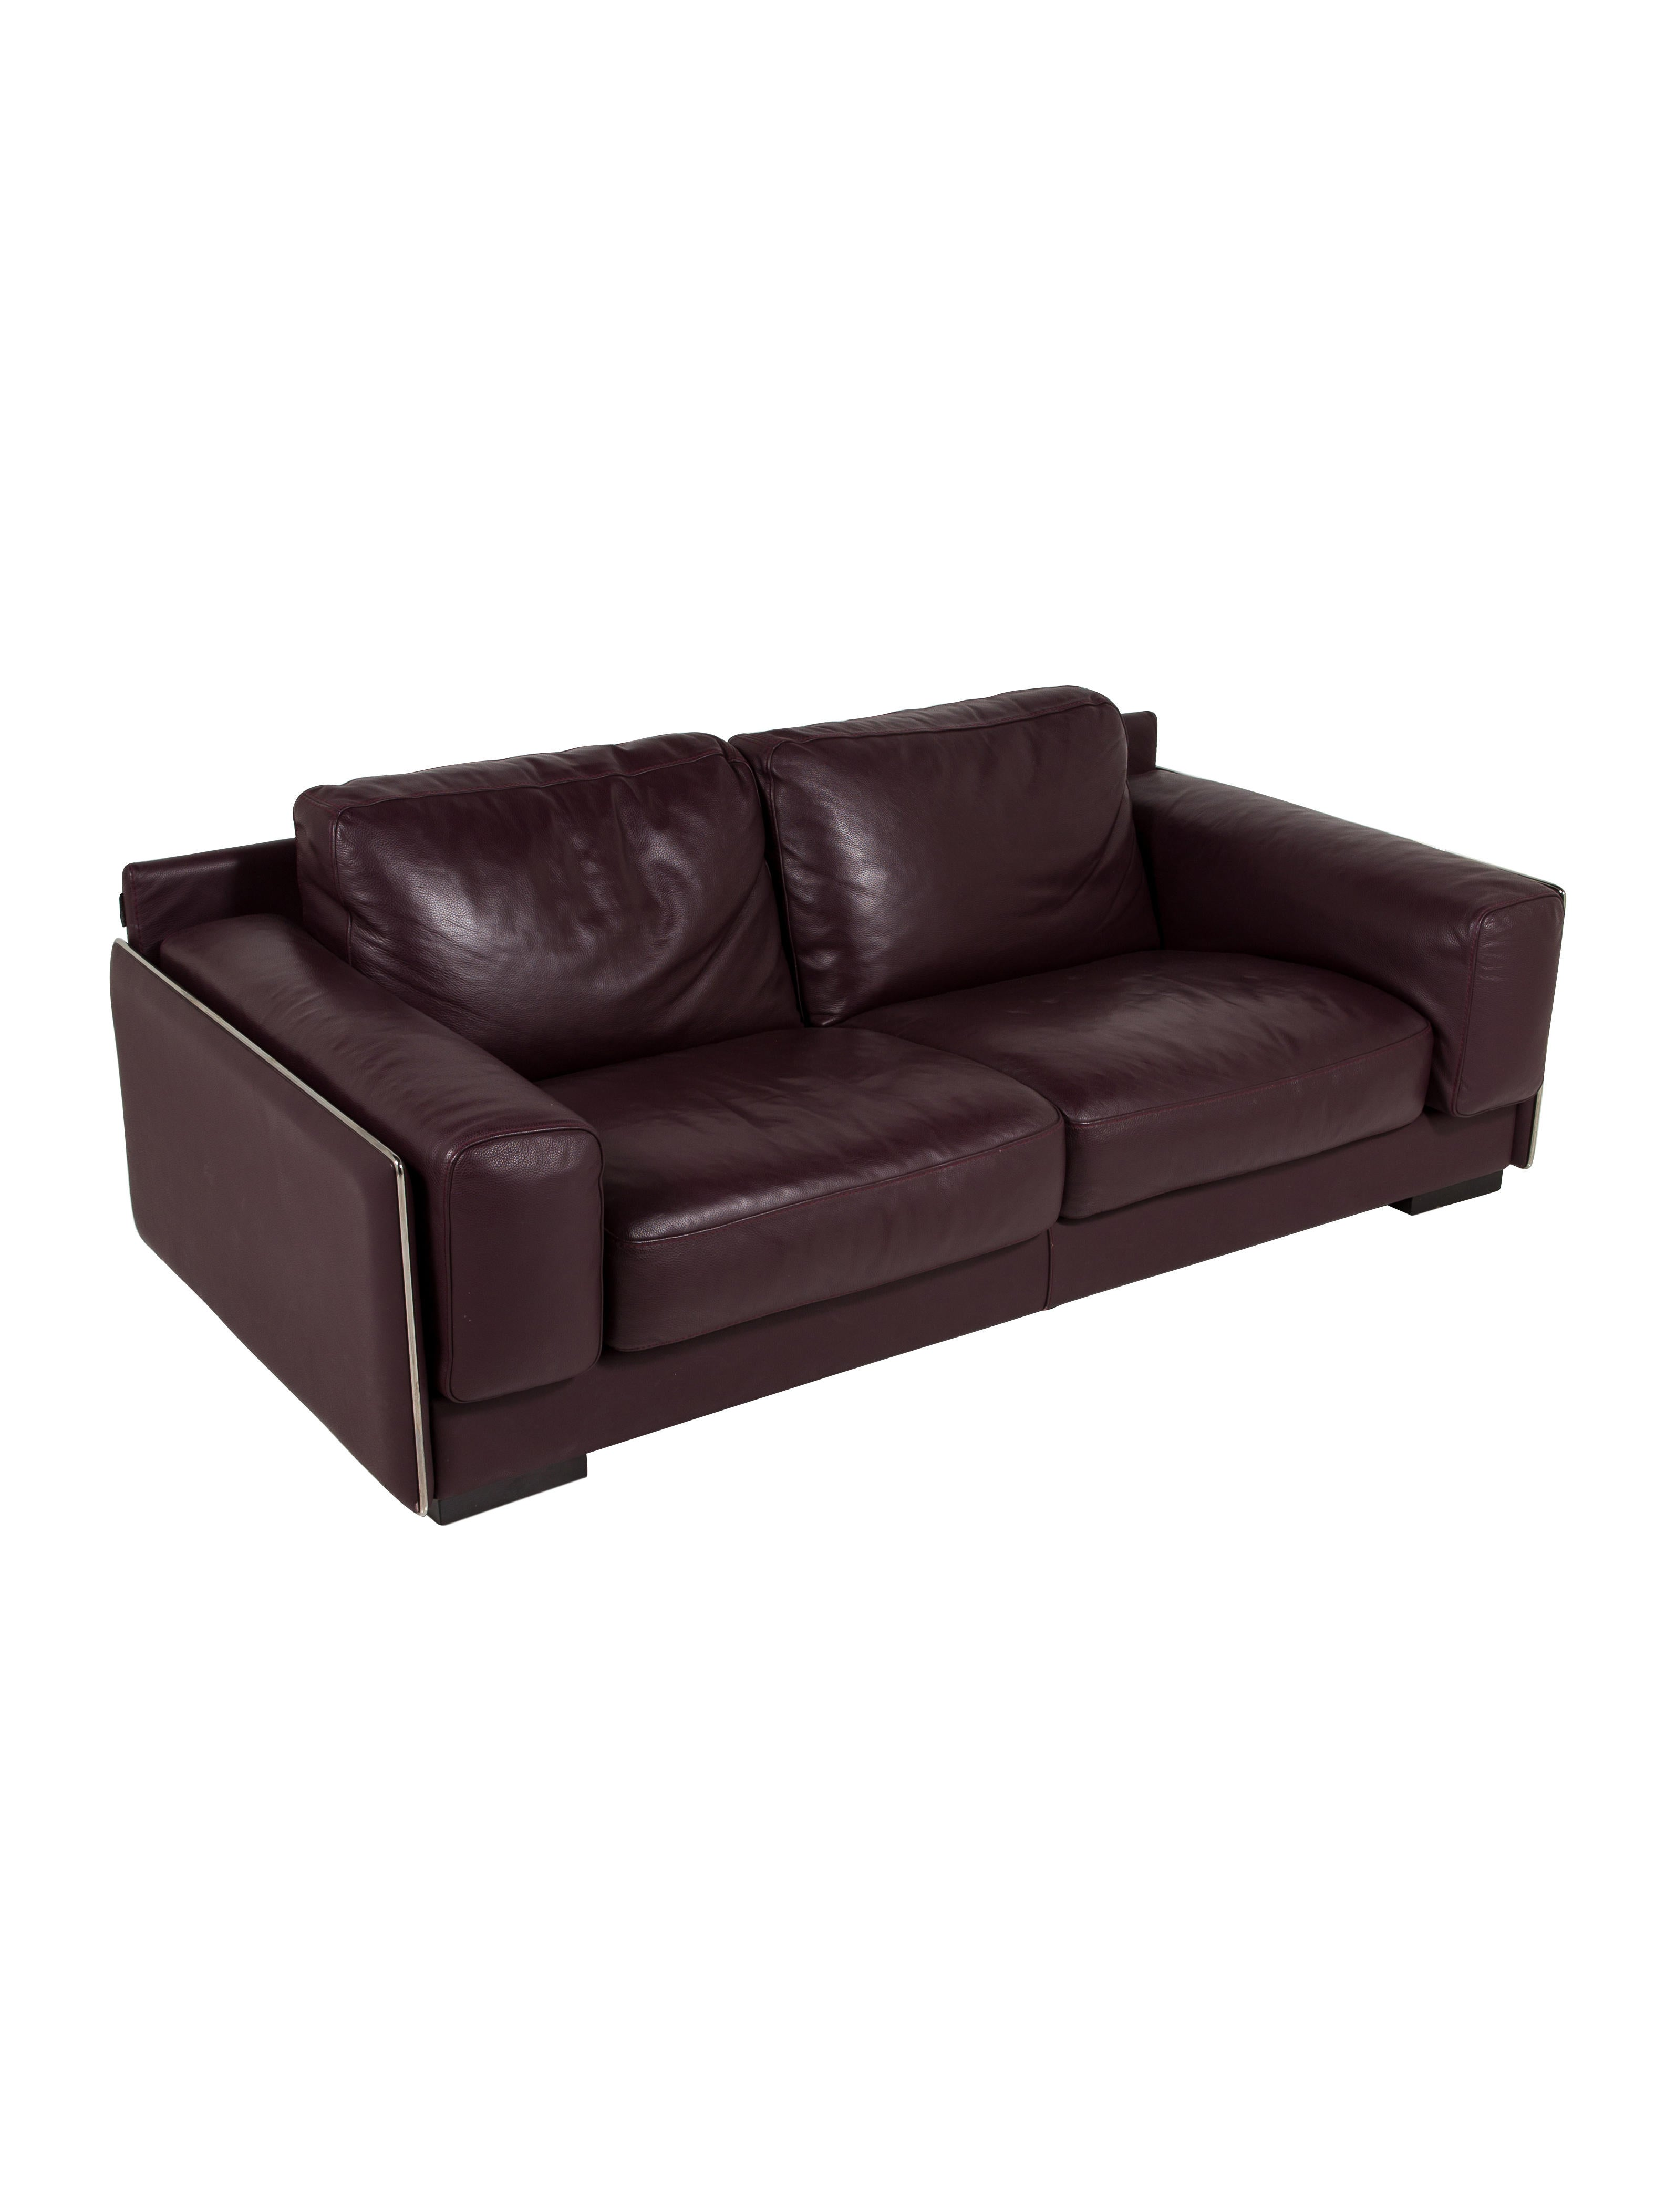 Roche bobois leather sofa furniture bob20046 the - Sofas roche bobois ...